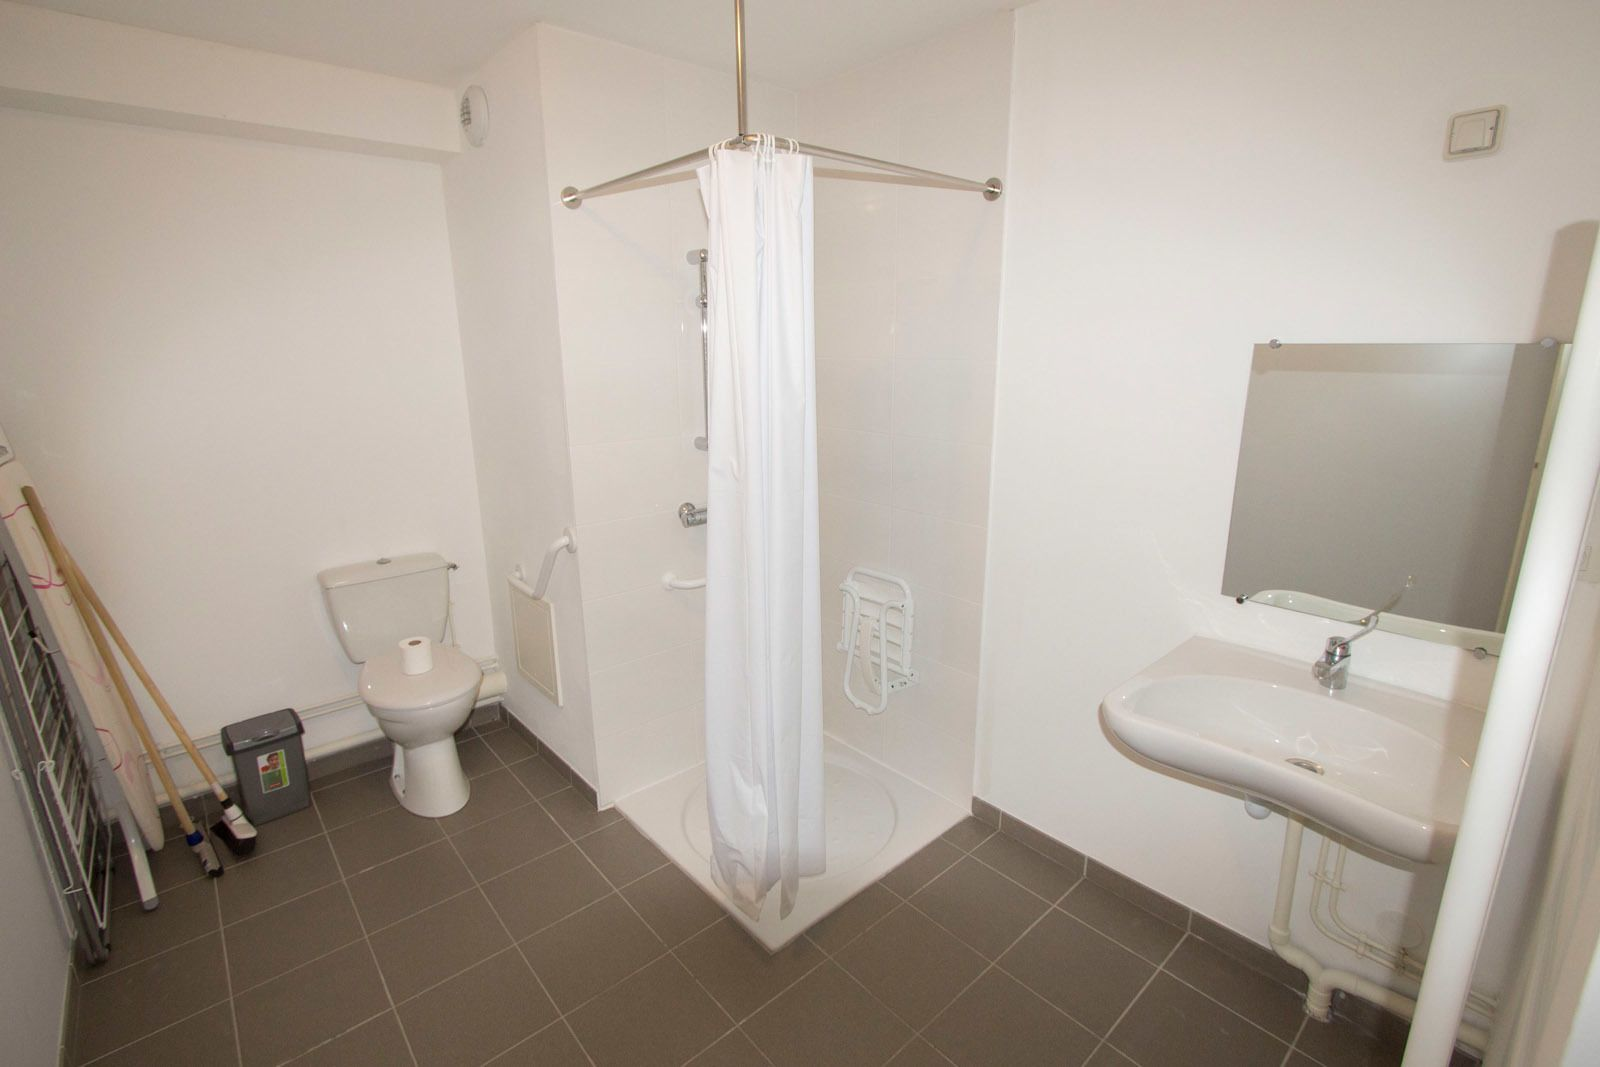 Suite for 2 people, adapted to people with a disability